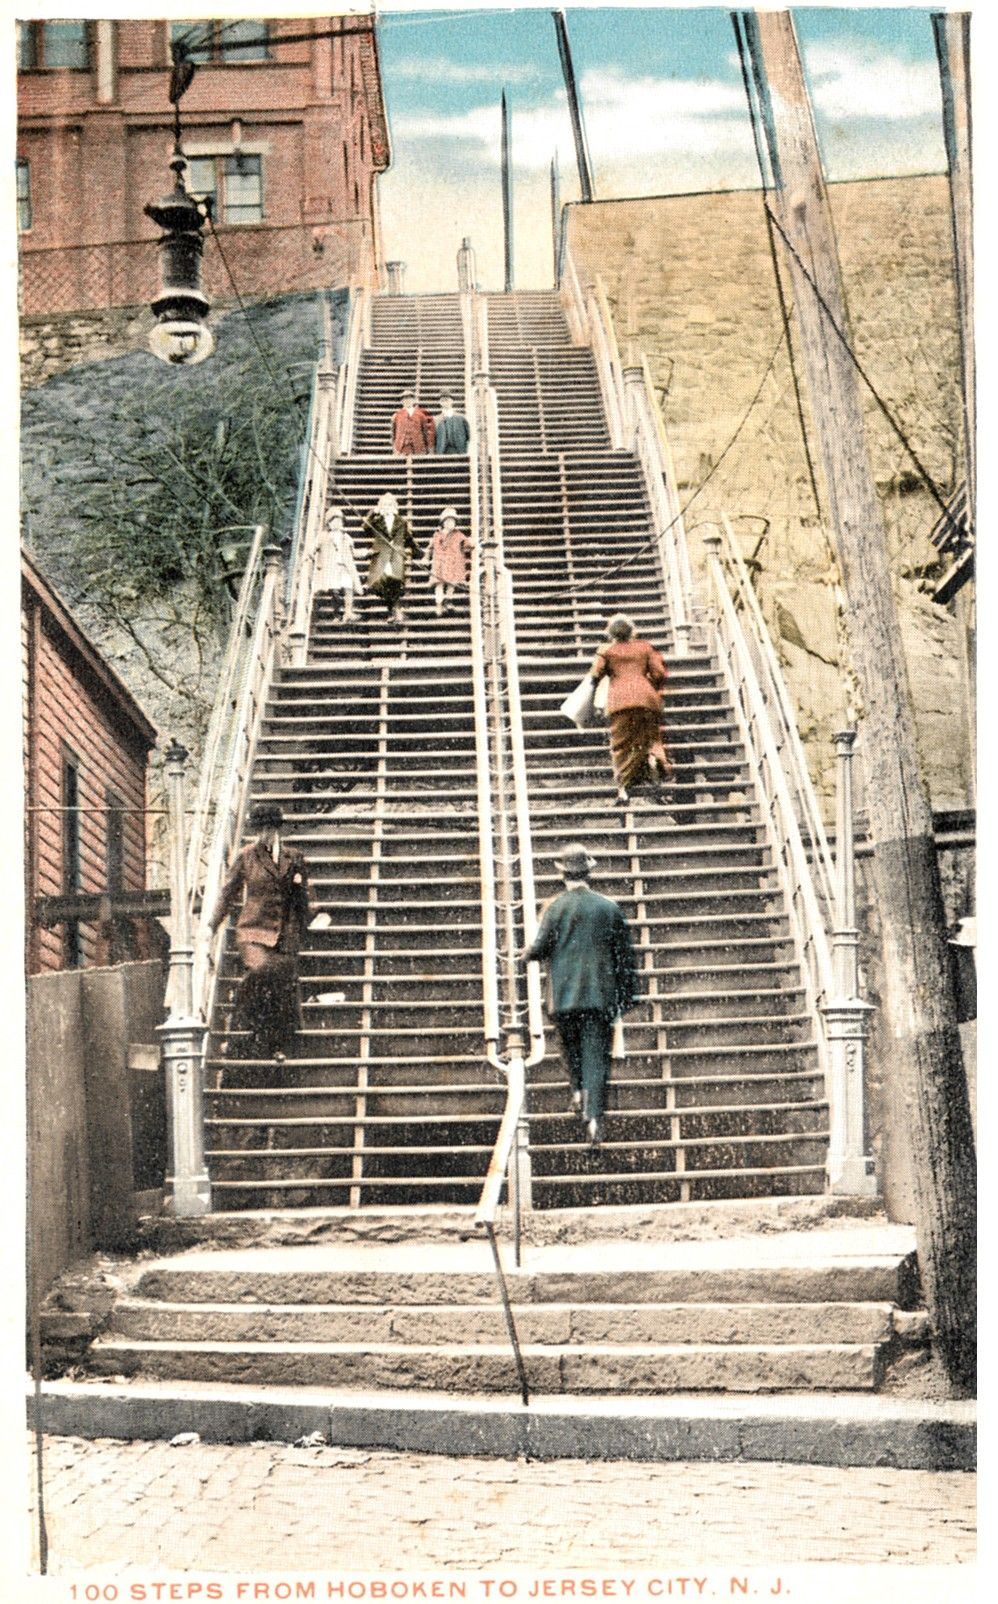 """THE """"100 STEPS"""" FROM HOBOKEN TO THE JERSEY CITY HEIGHTS,ca EARLY 1900'S."""